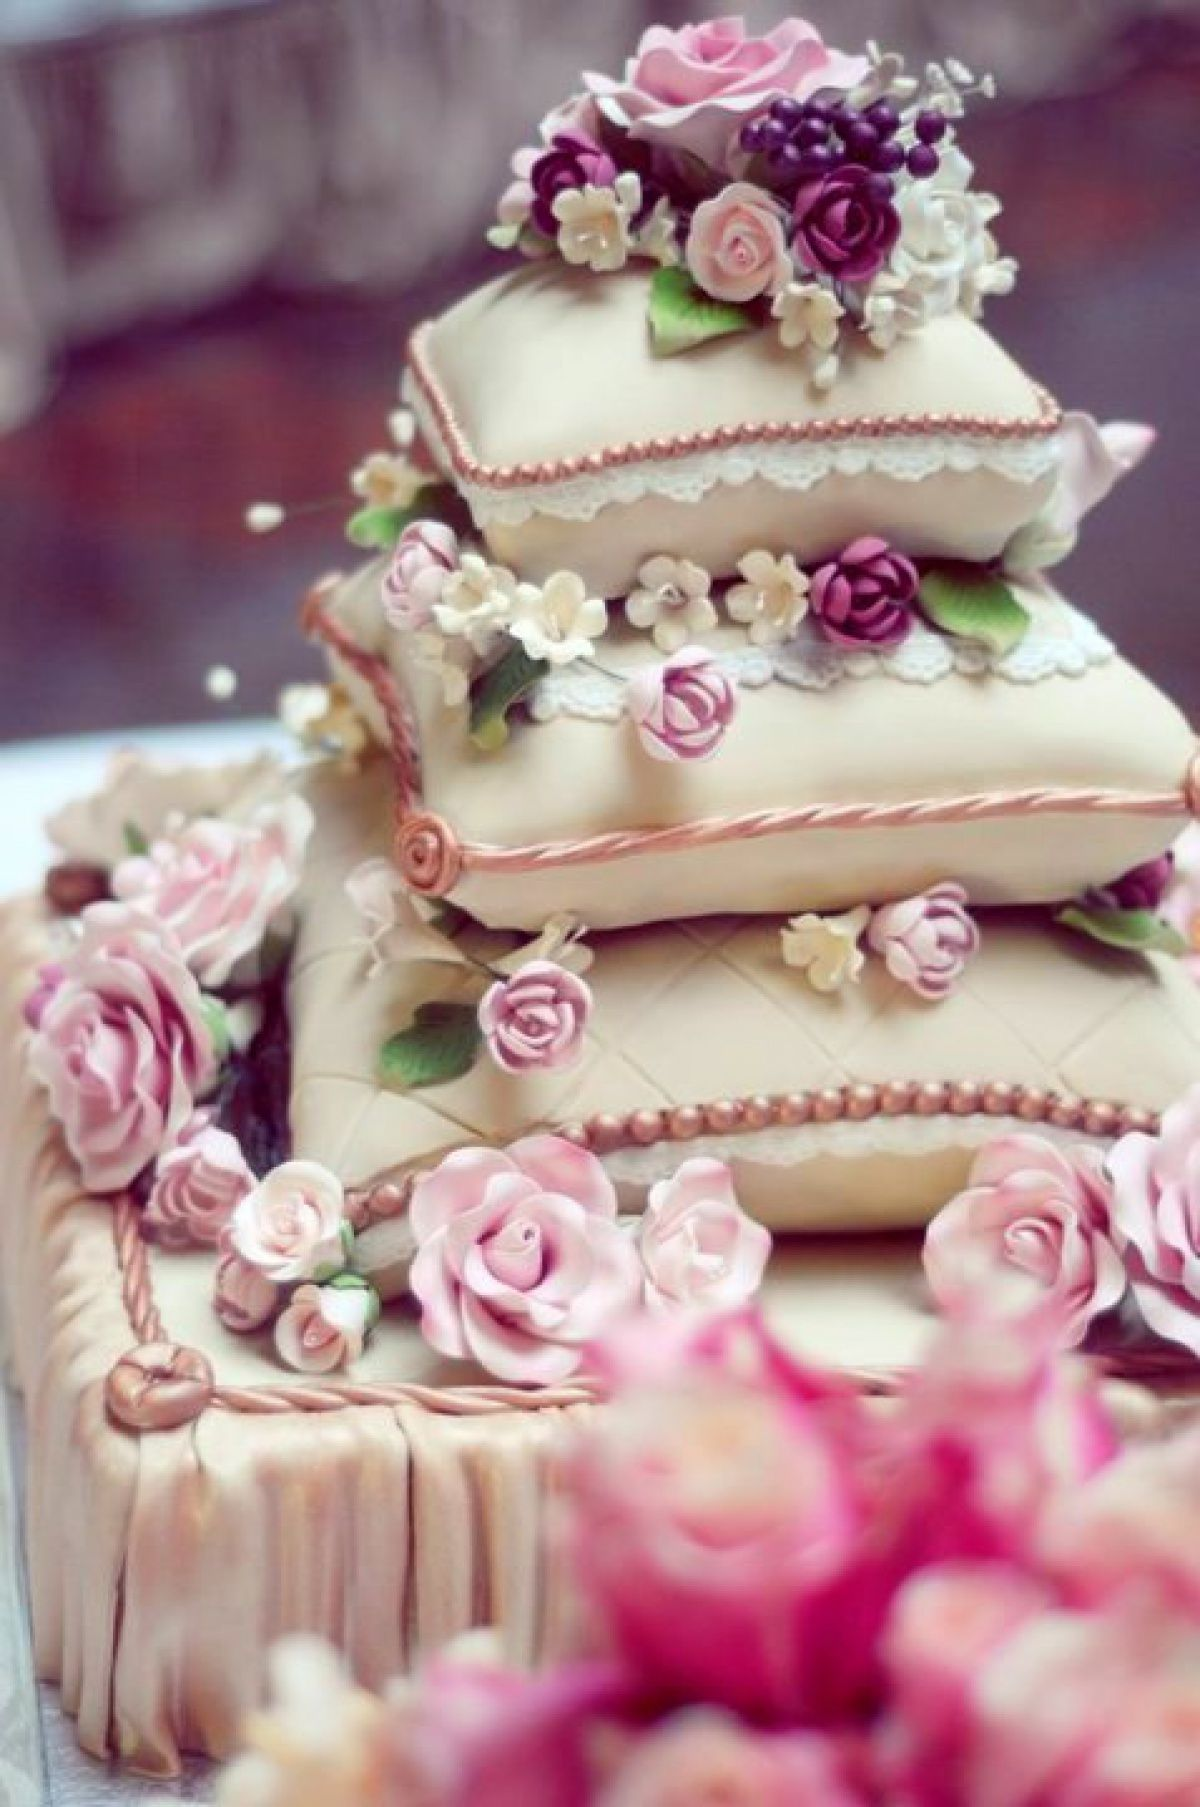 big wedding cakes | Pillow Cake - Cake Theater I like the idea of the pillow themed cake, not the colors though!